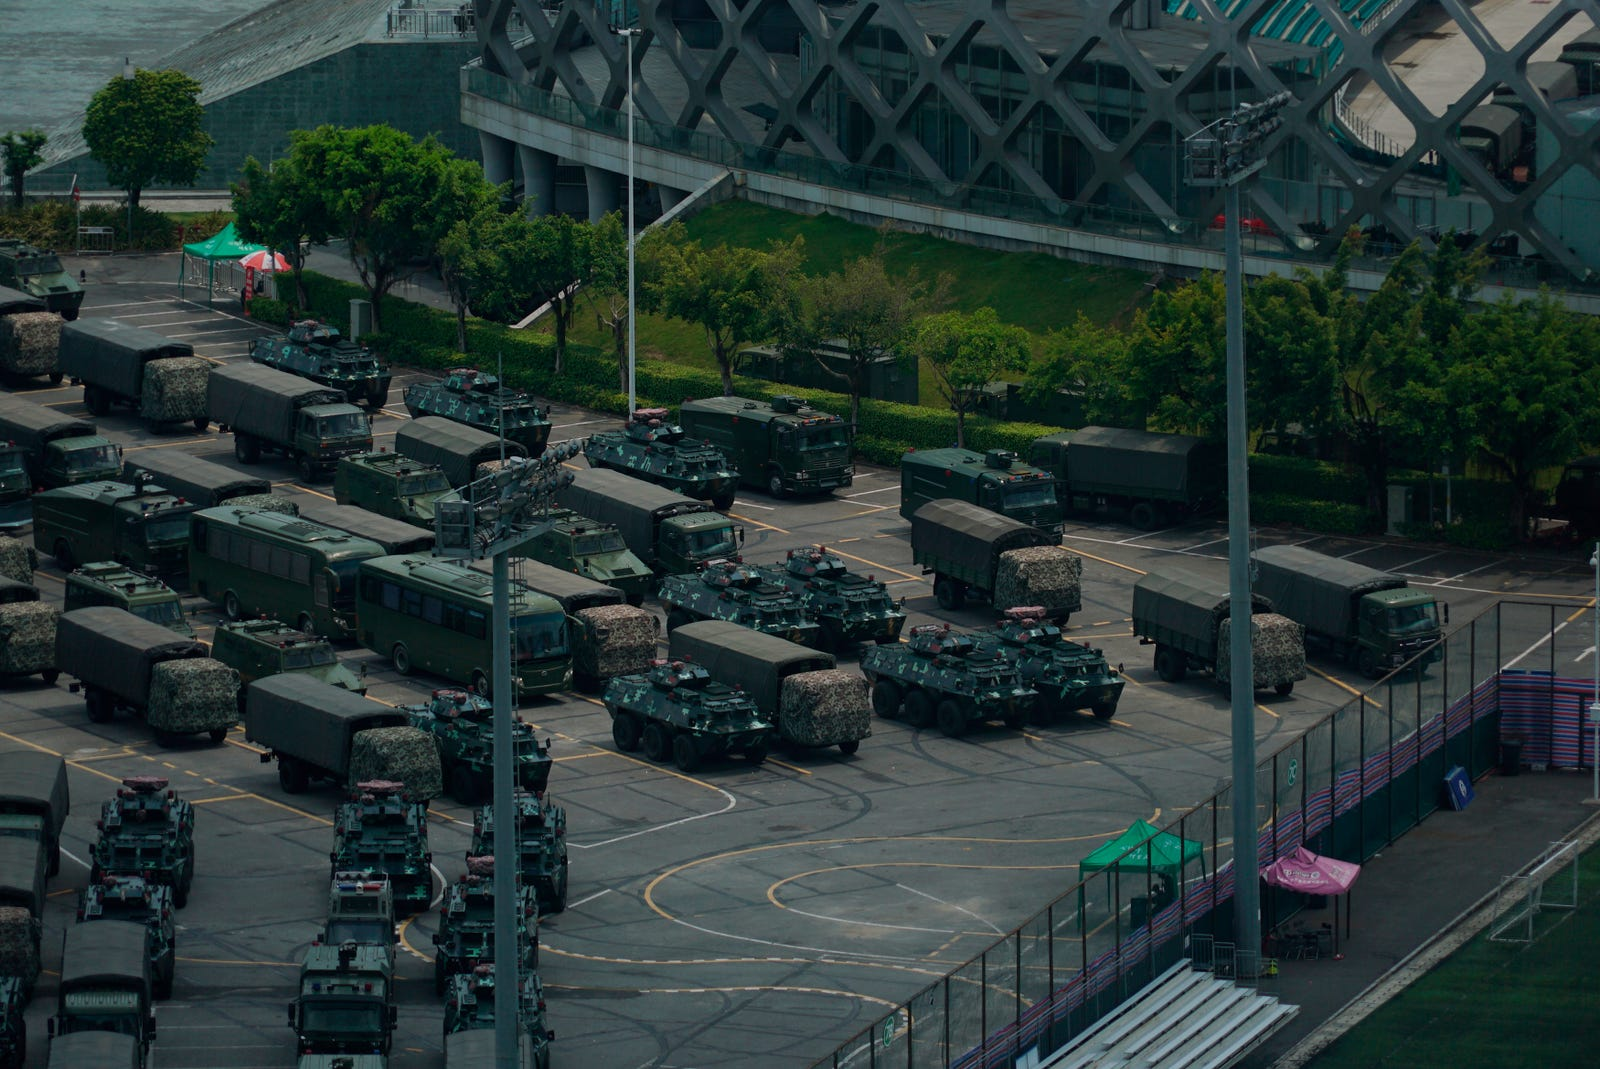 Armored vehicles and troop trucks are parked in a lot by Shenzhen Bay Stadium in Shenzhen, China Friday, Aug. 16, 2019. Armored vehicles belonging to China's paramilitary People's Armed Police were parked in the sports complex across the border in Hong Kong, in what some have interpreted as a threat against pro-democracy protesters.